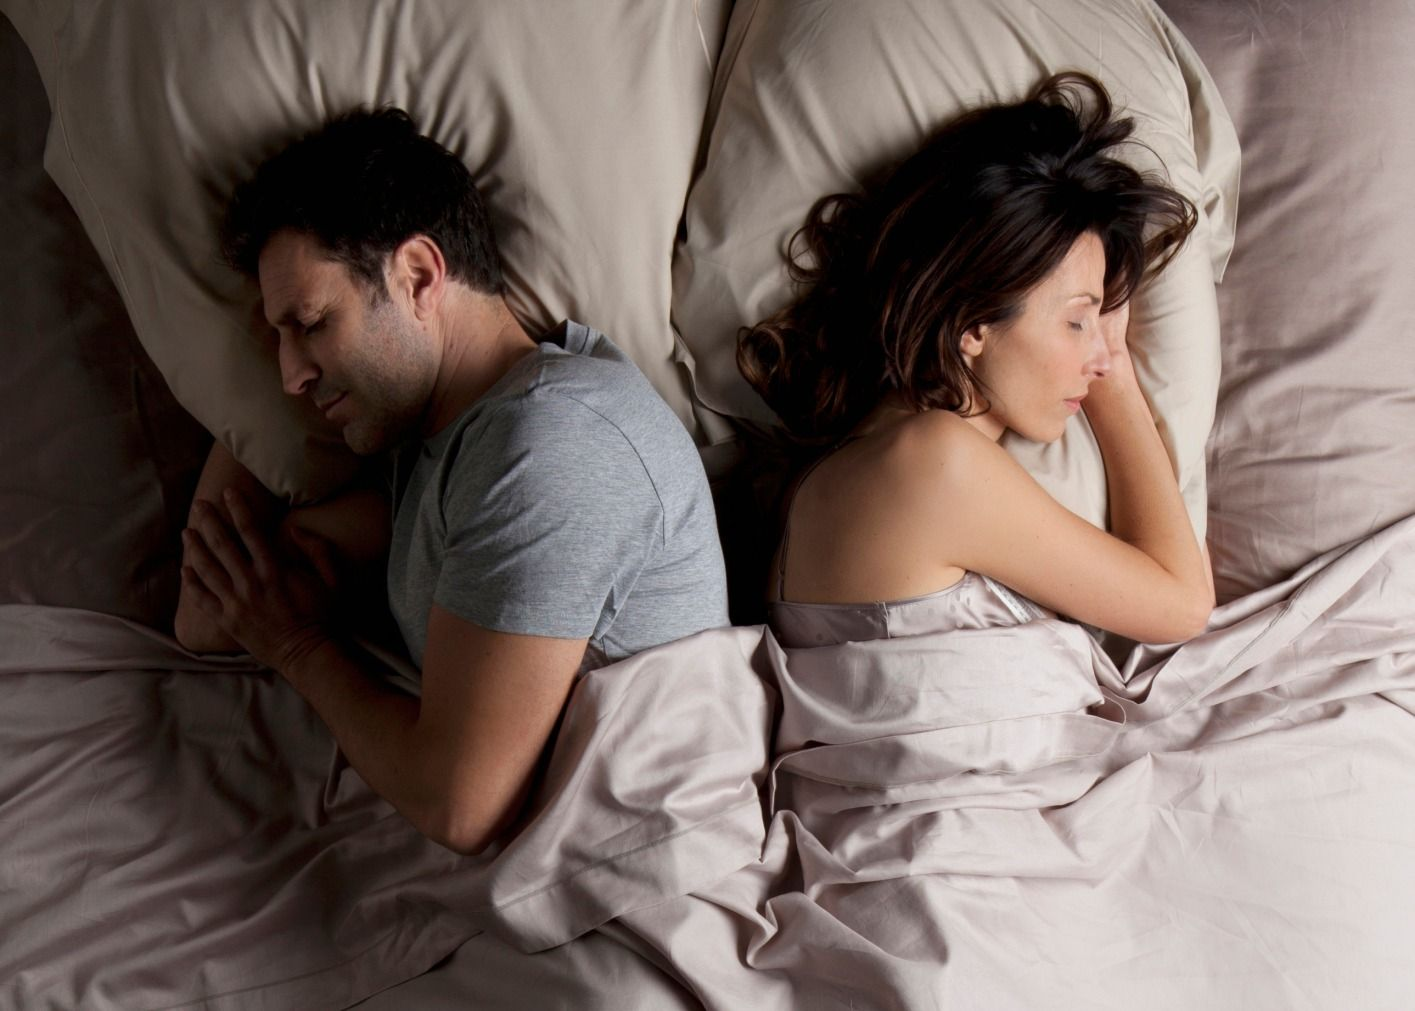 Sleeping Positions and Relationships Infographic - What Snuggling Says  About You as a Couple